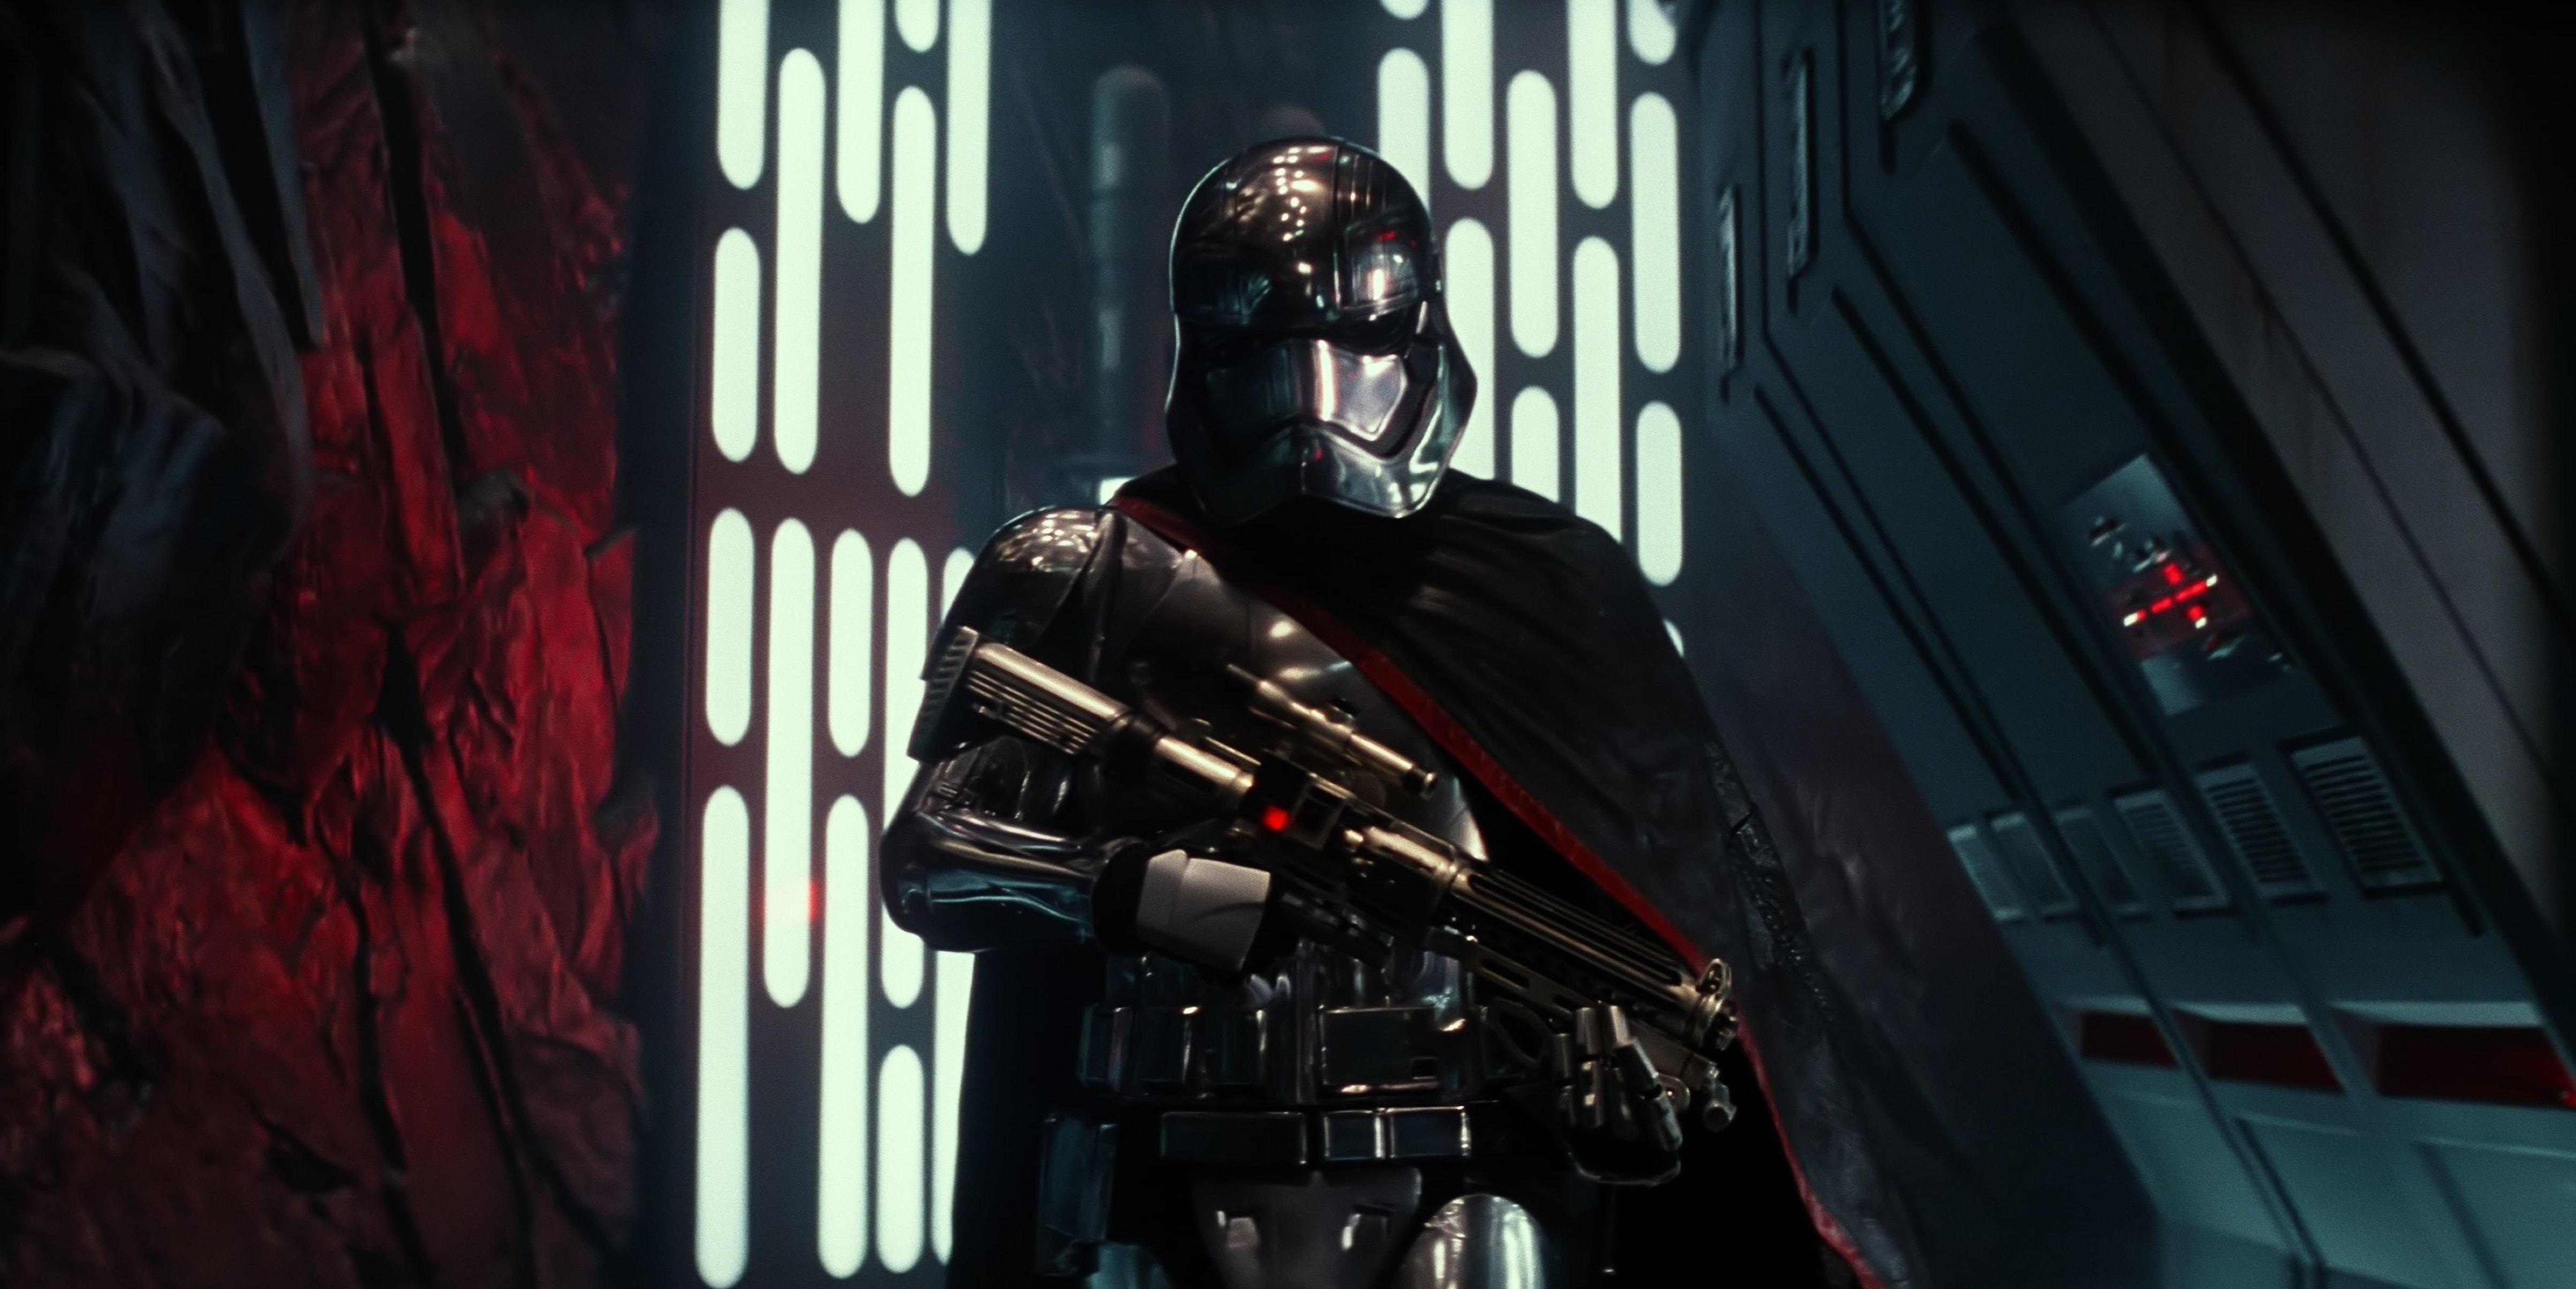 Final 'The Force Awakens' Trailer to Drop on Monday